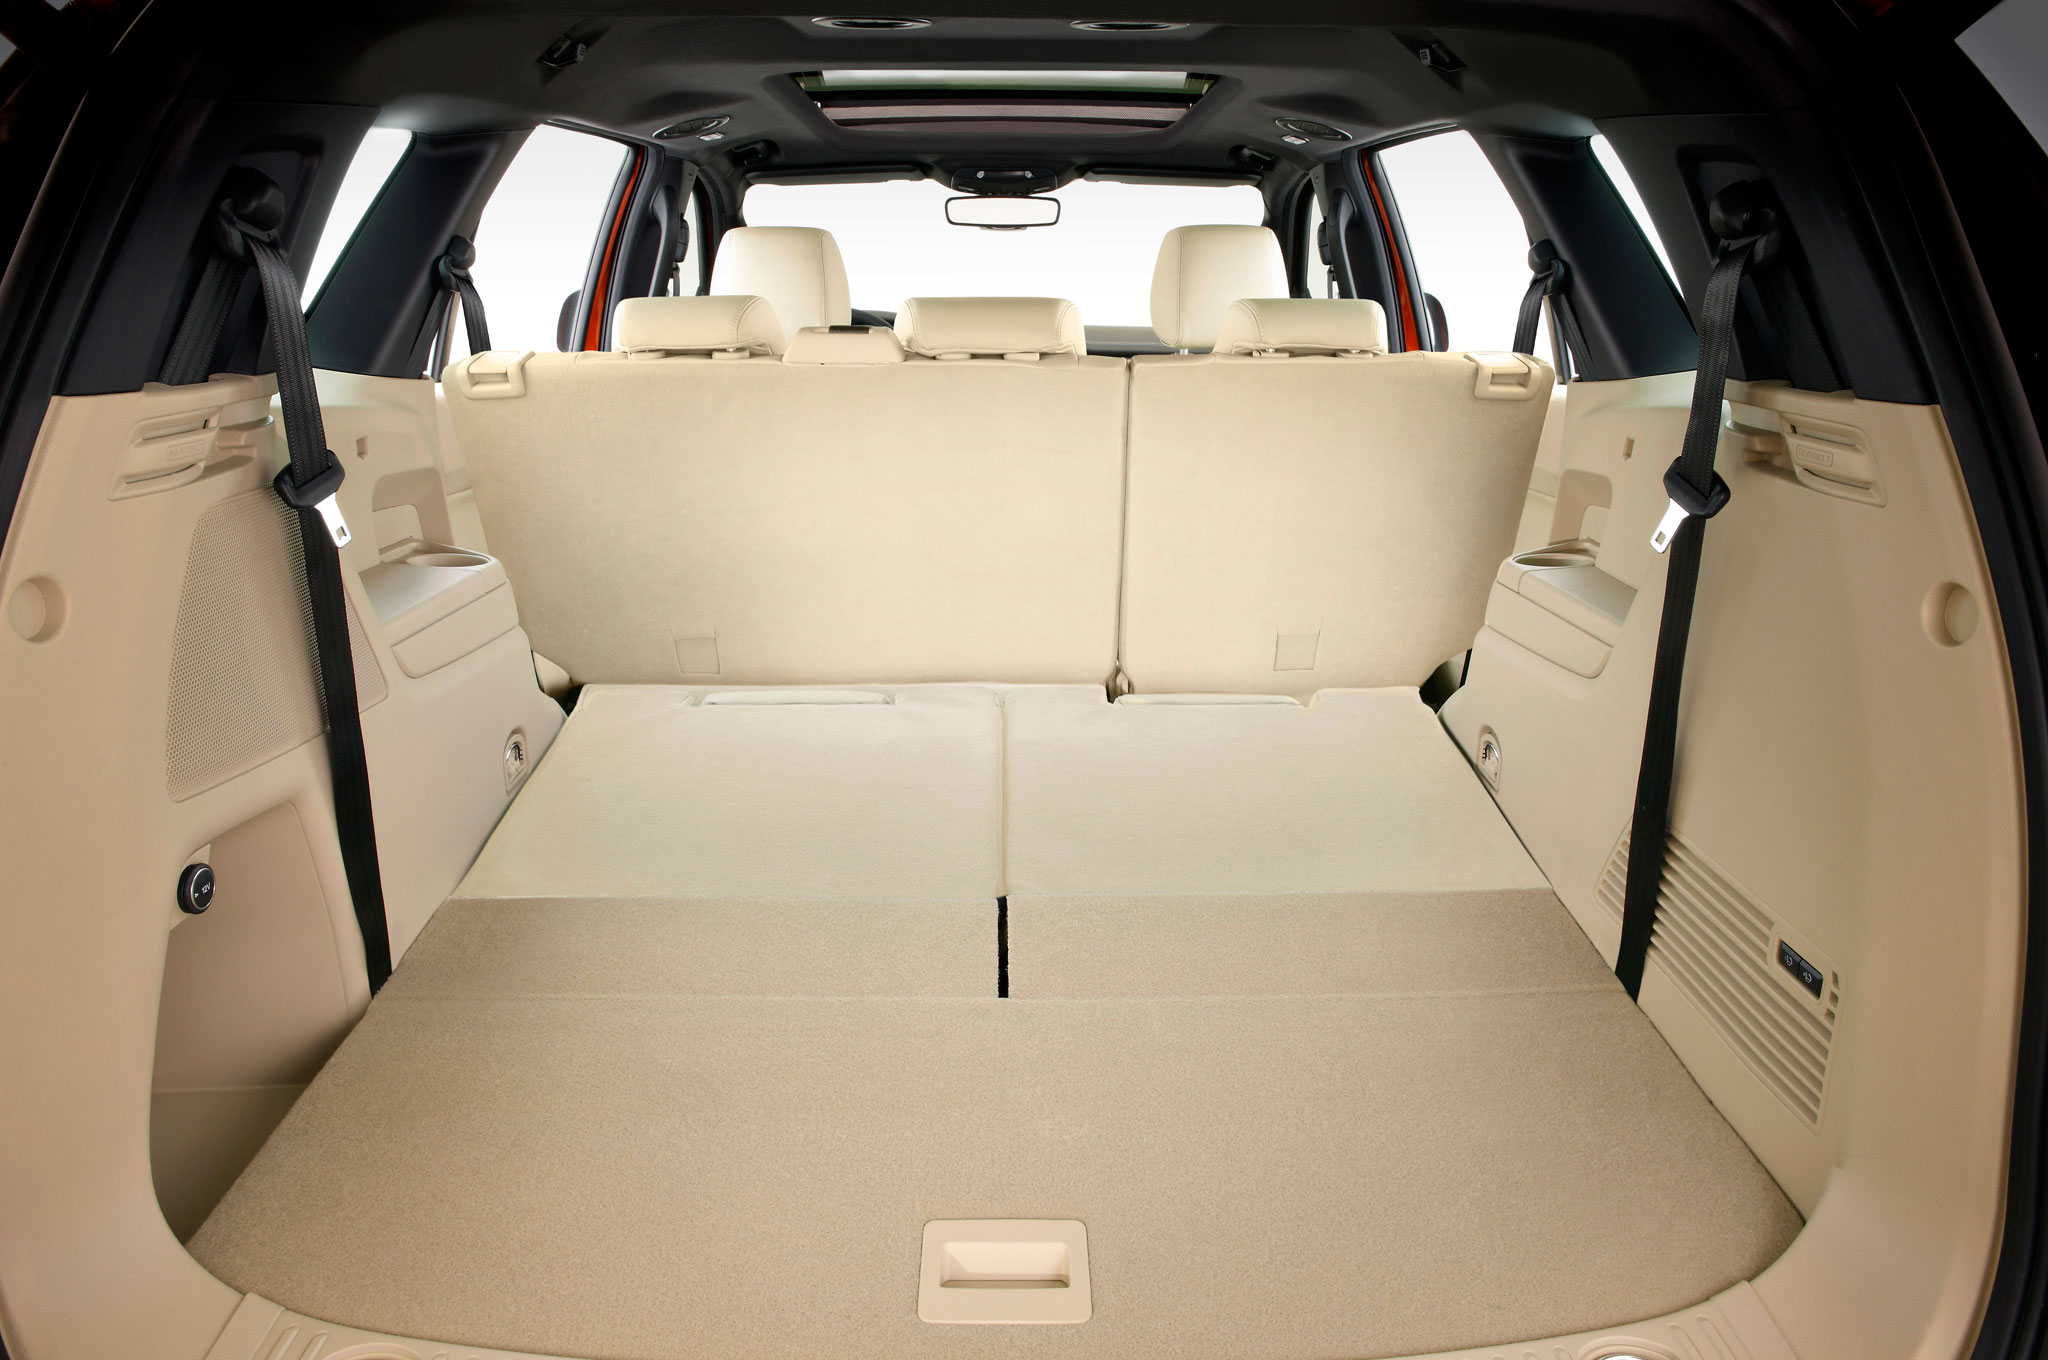 2016 ford everest interior cargo area third row down